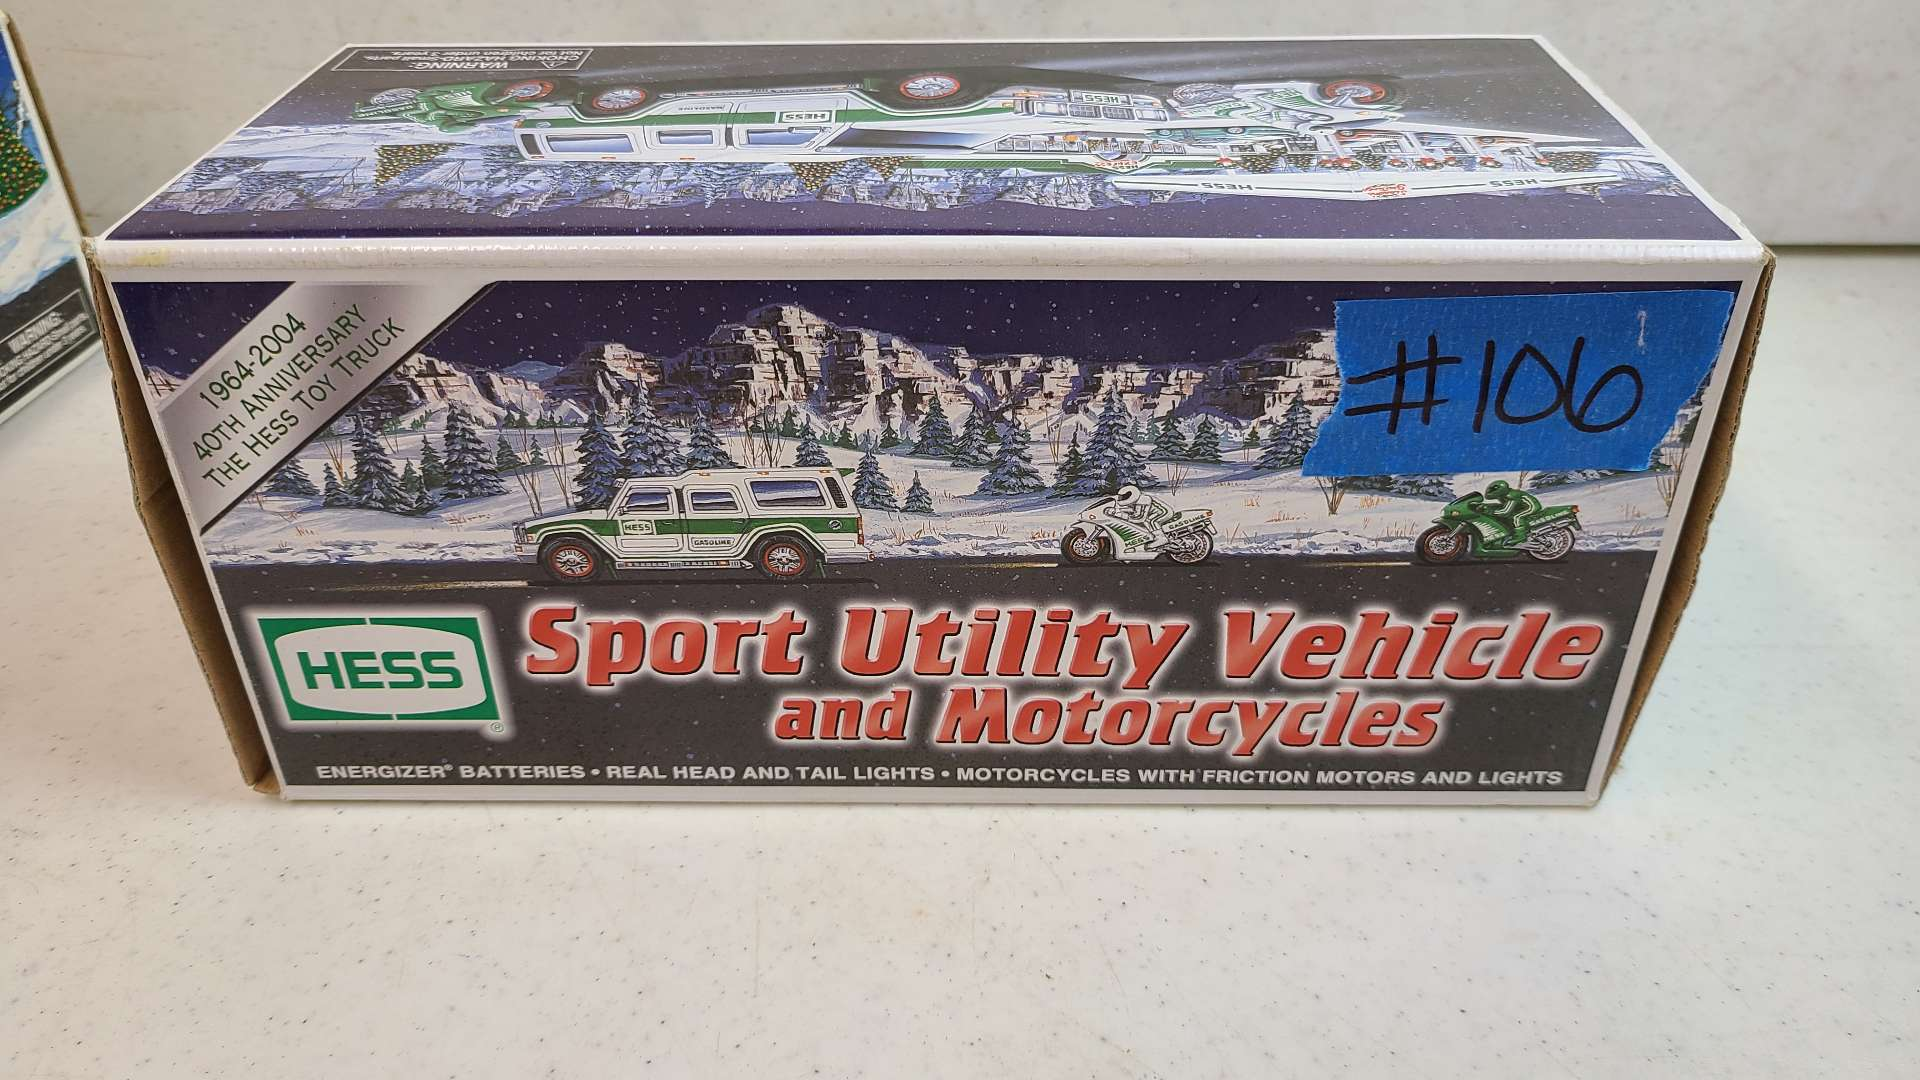 Lot # 106 HESS SUV and Motorcycles w/ Box